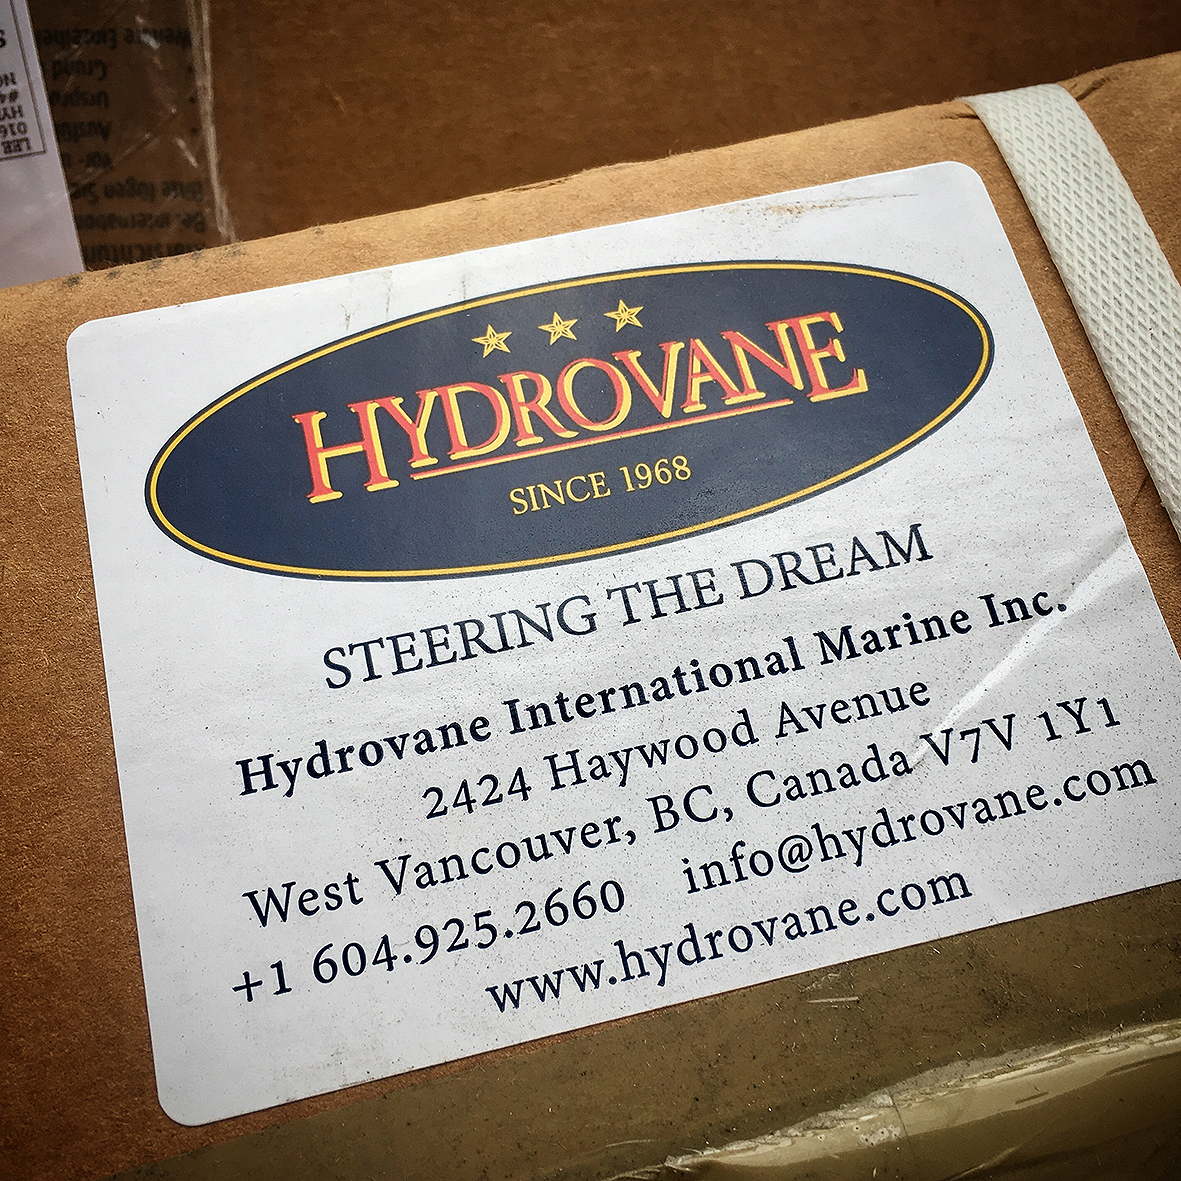 Hydrovane Steering The Dream